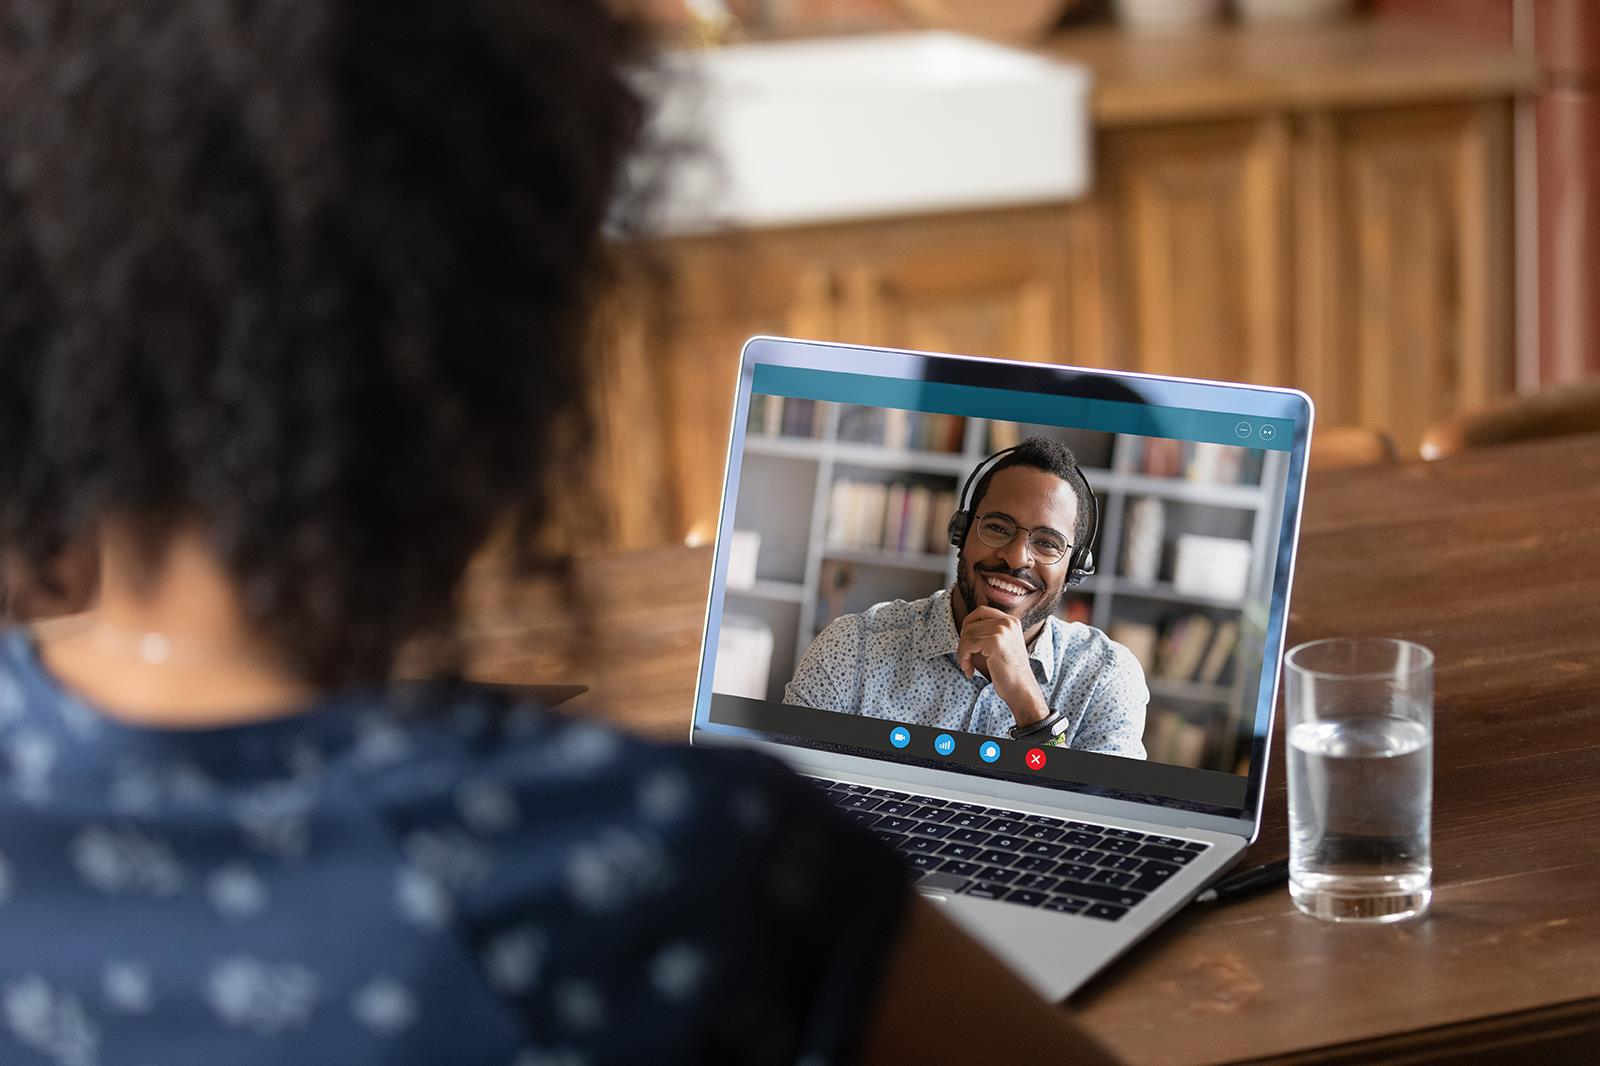 Woman interviewing a man using videoconferencing/Zoom